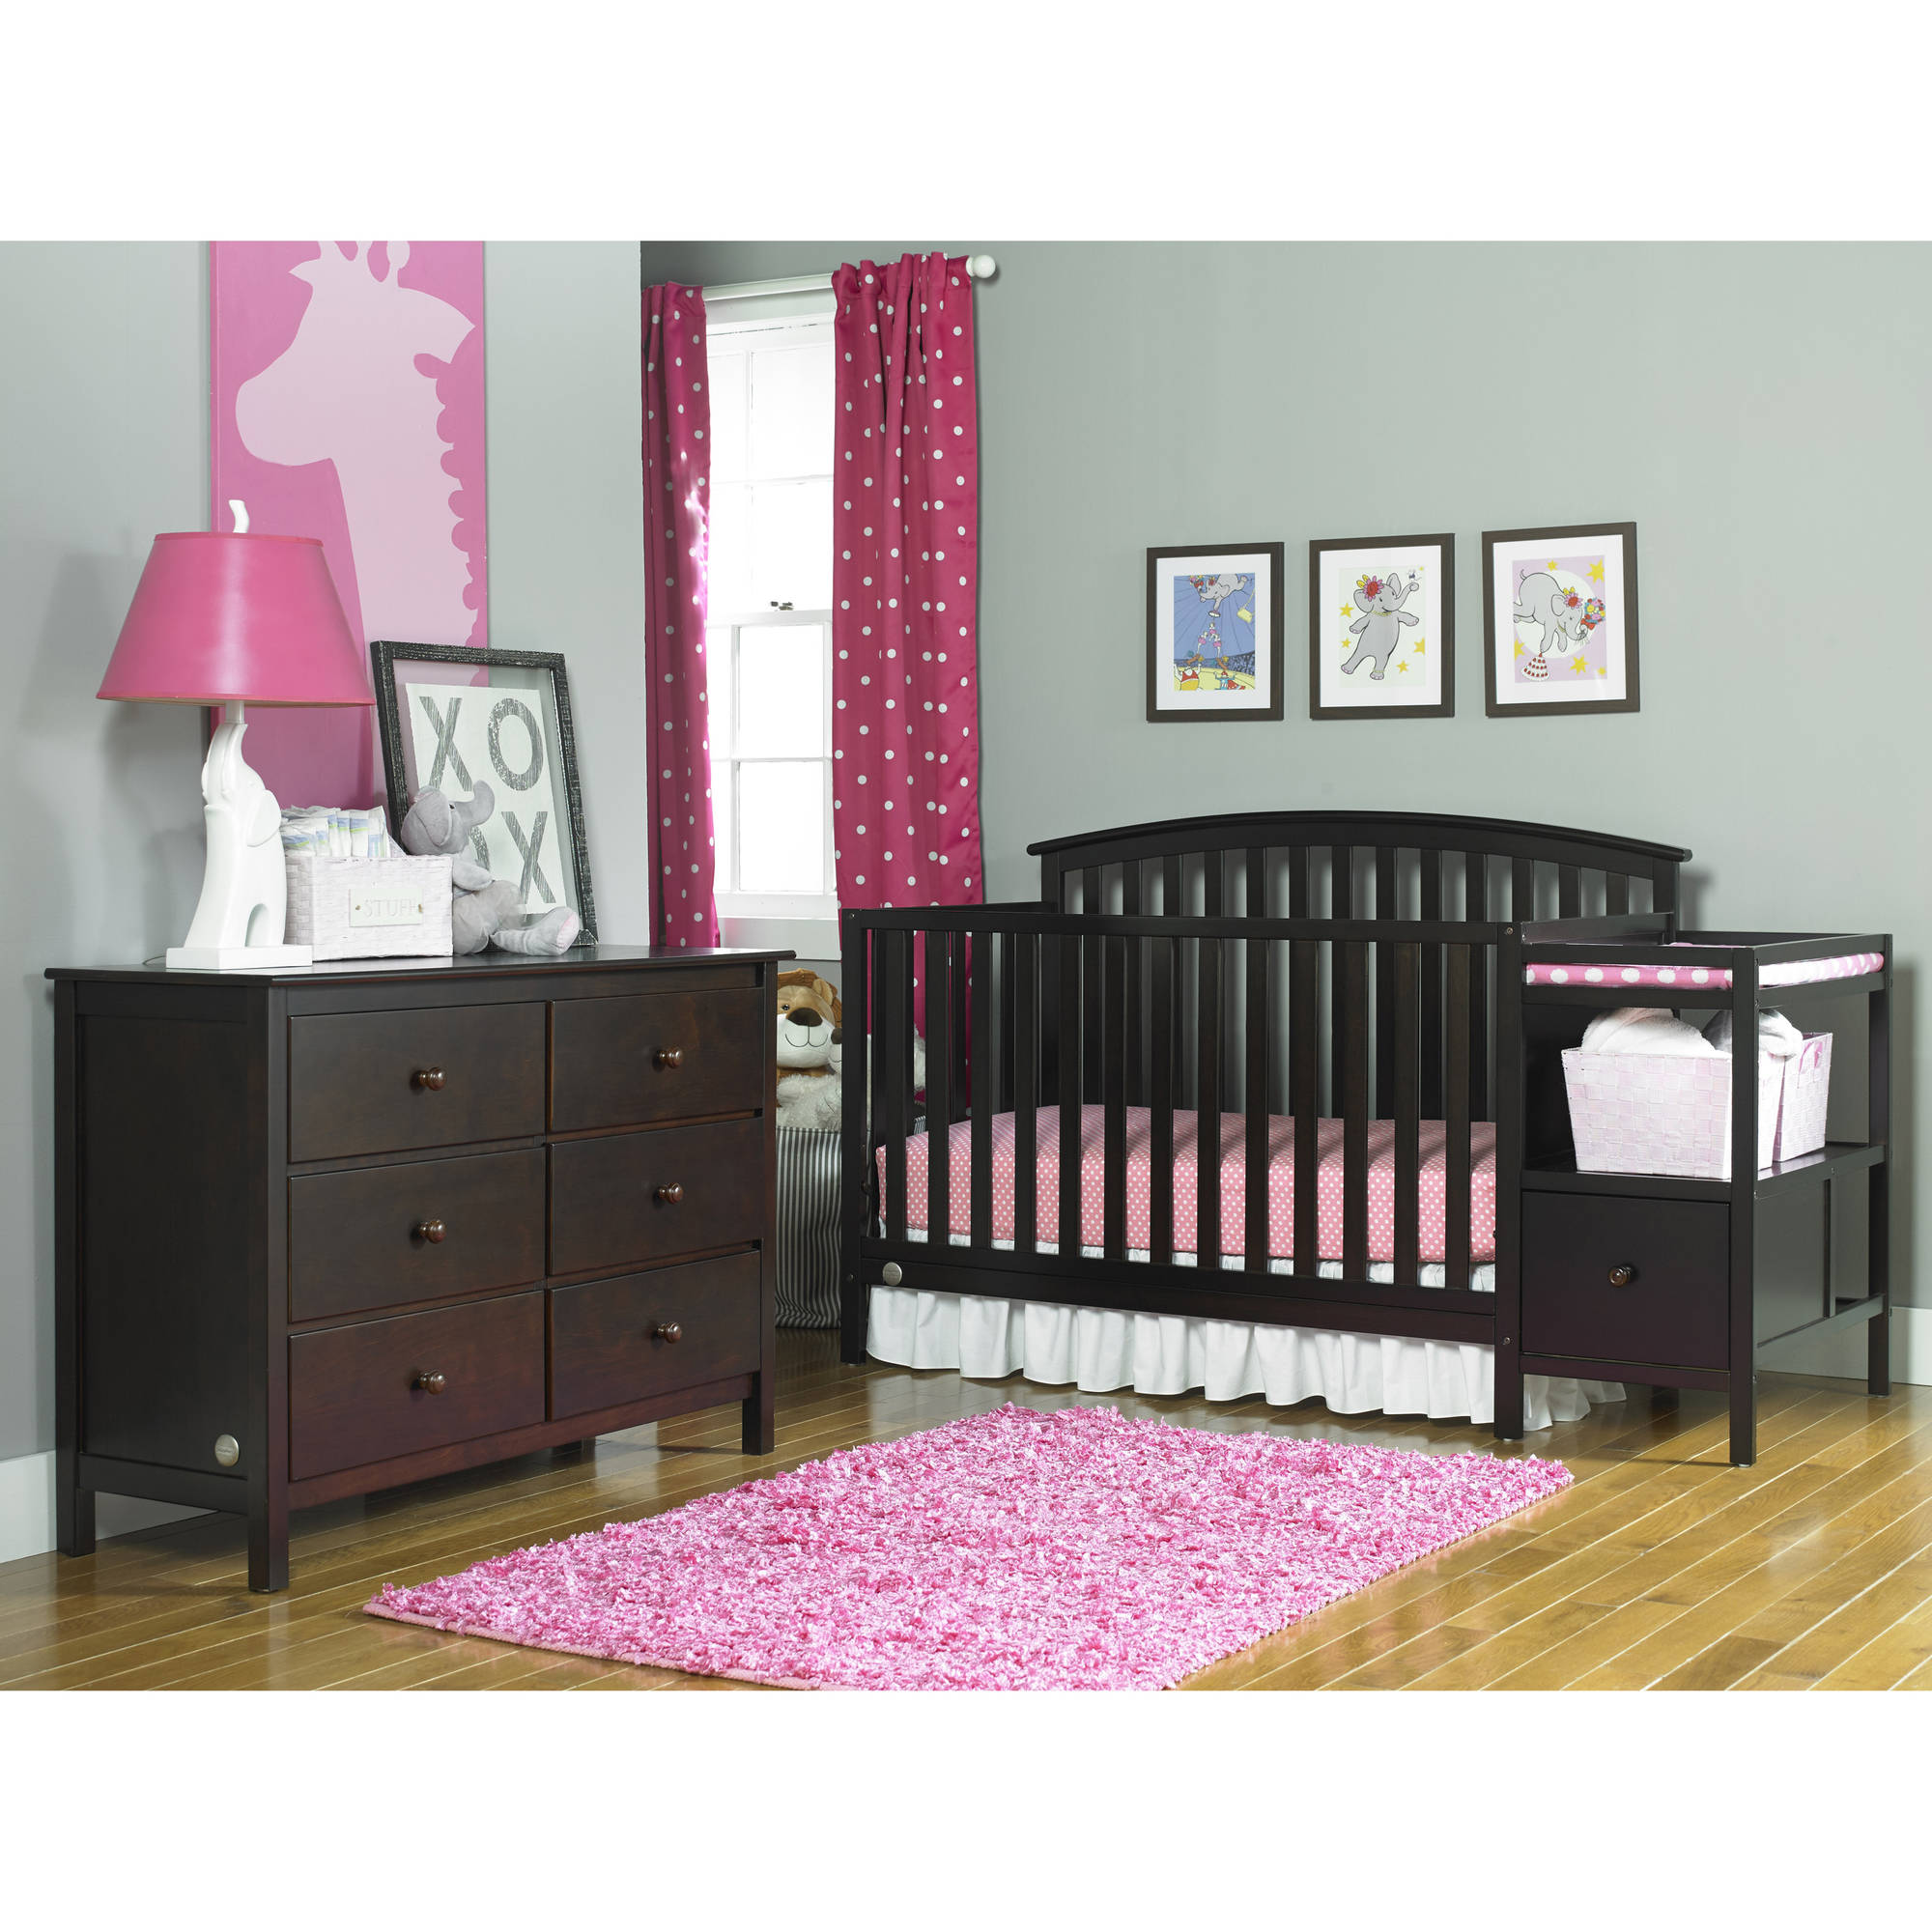 Huntington Bedroom Furniture Fisher Price Huntington 4 In 1 Convertible Crib N Changer